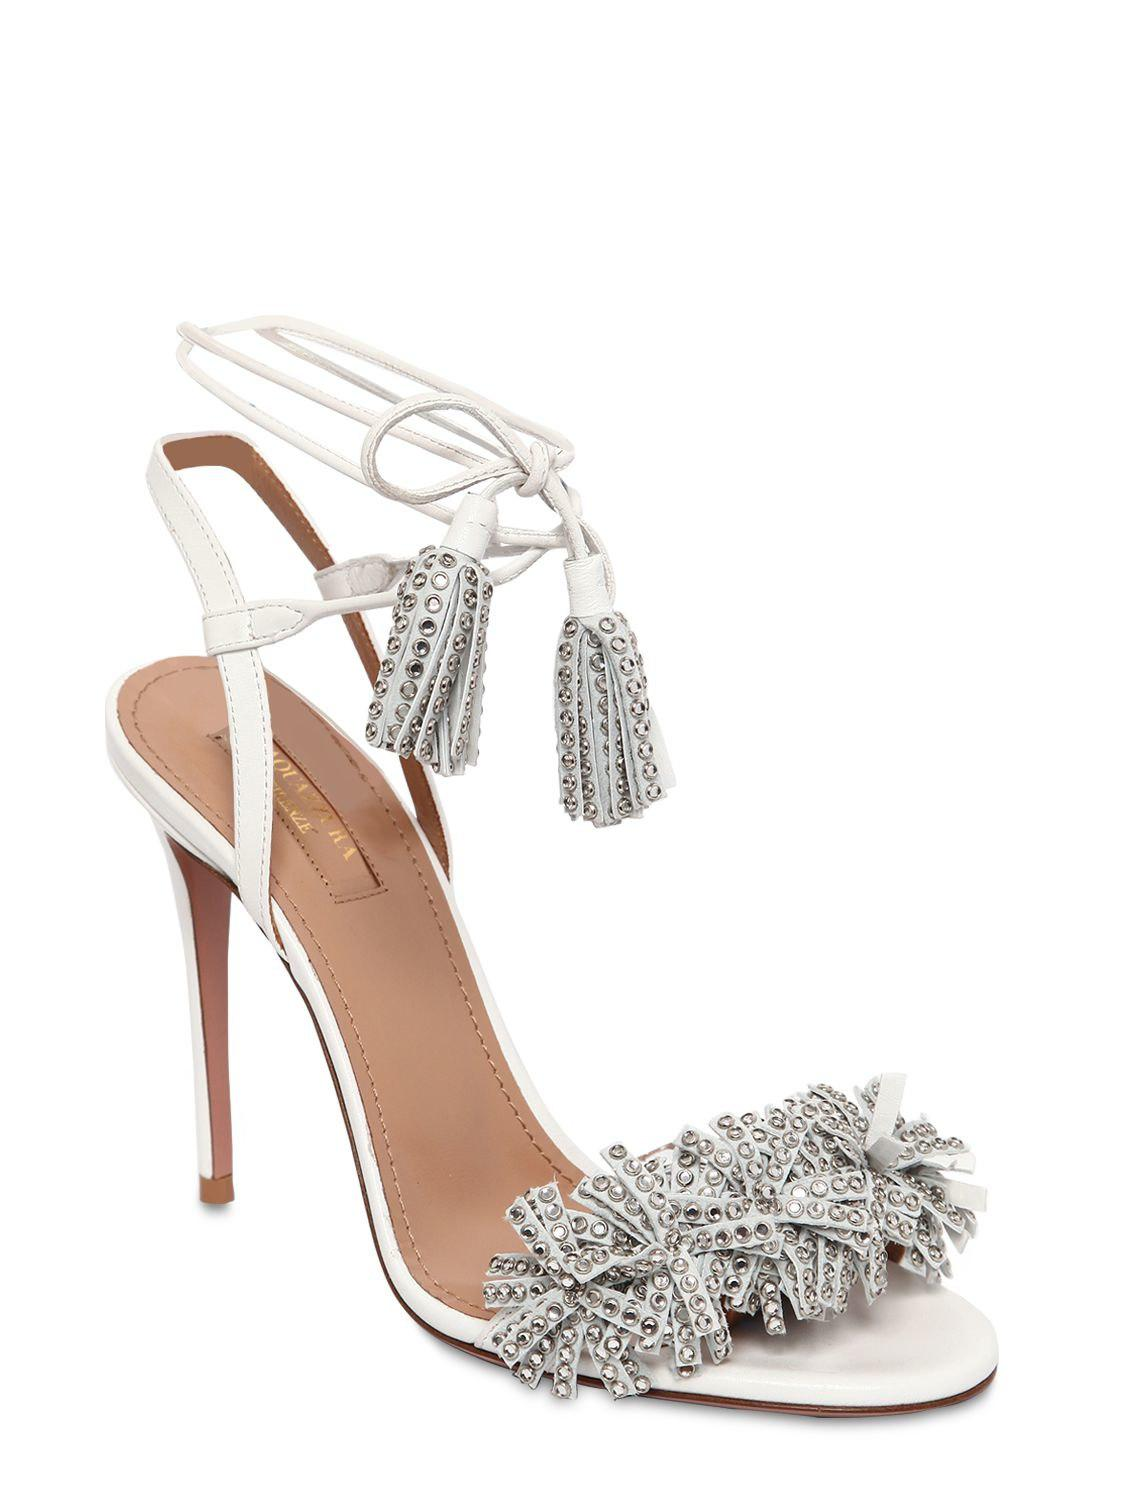 1f8121d1a Lyst - Aquazzura 105mm Wild Crystal Leather Sandals in White - Save 26%